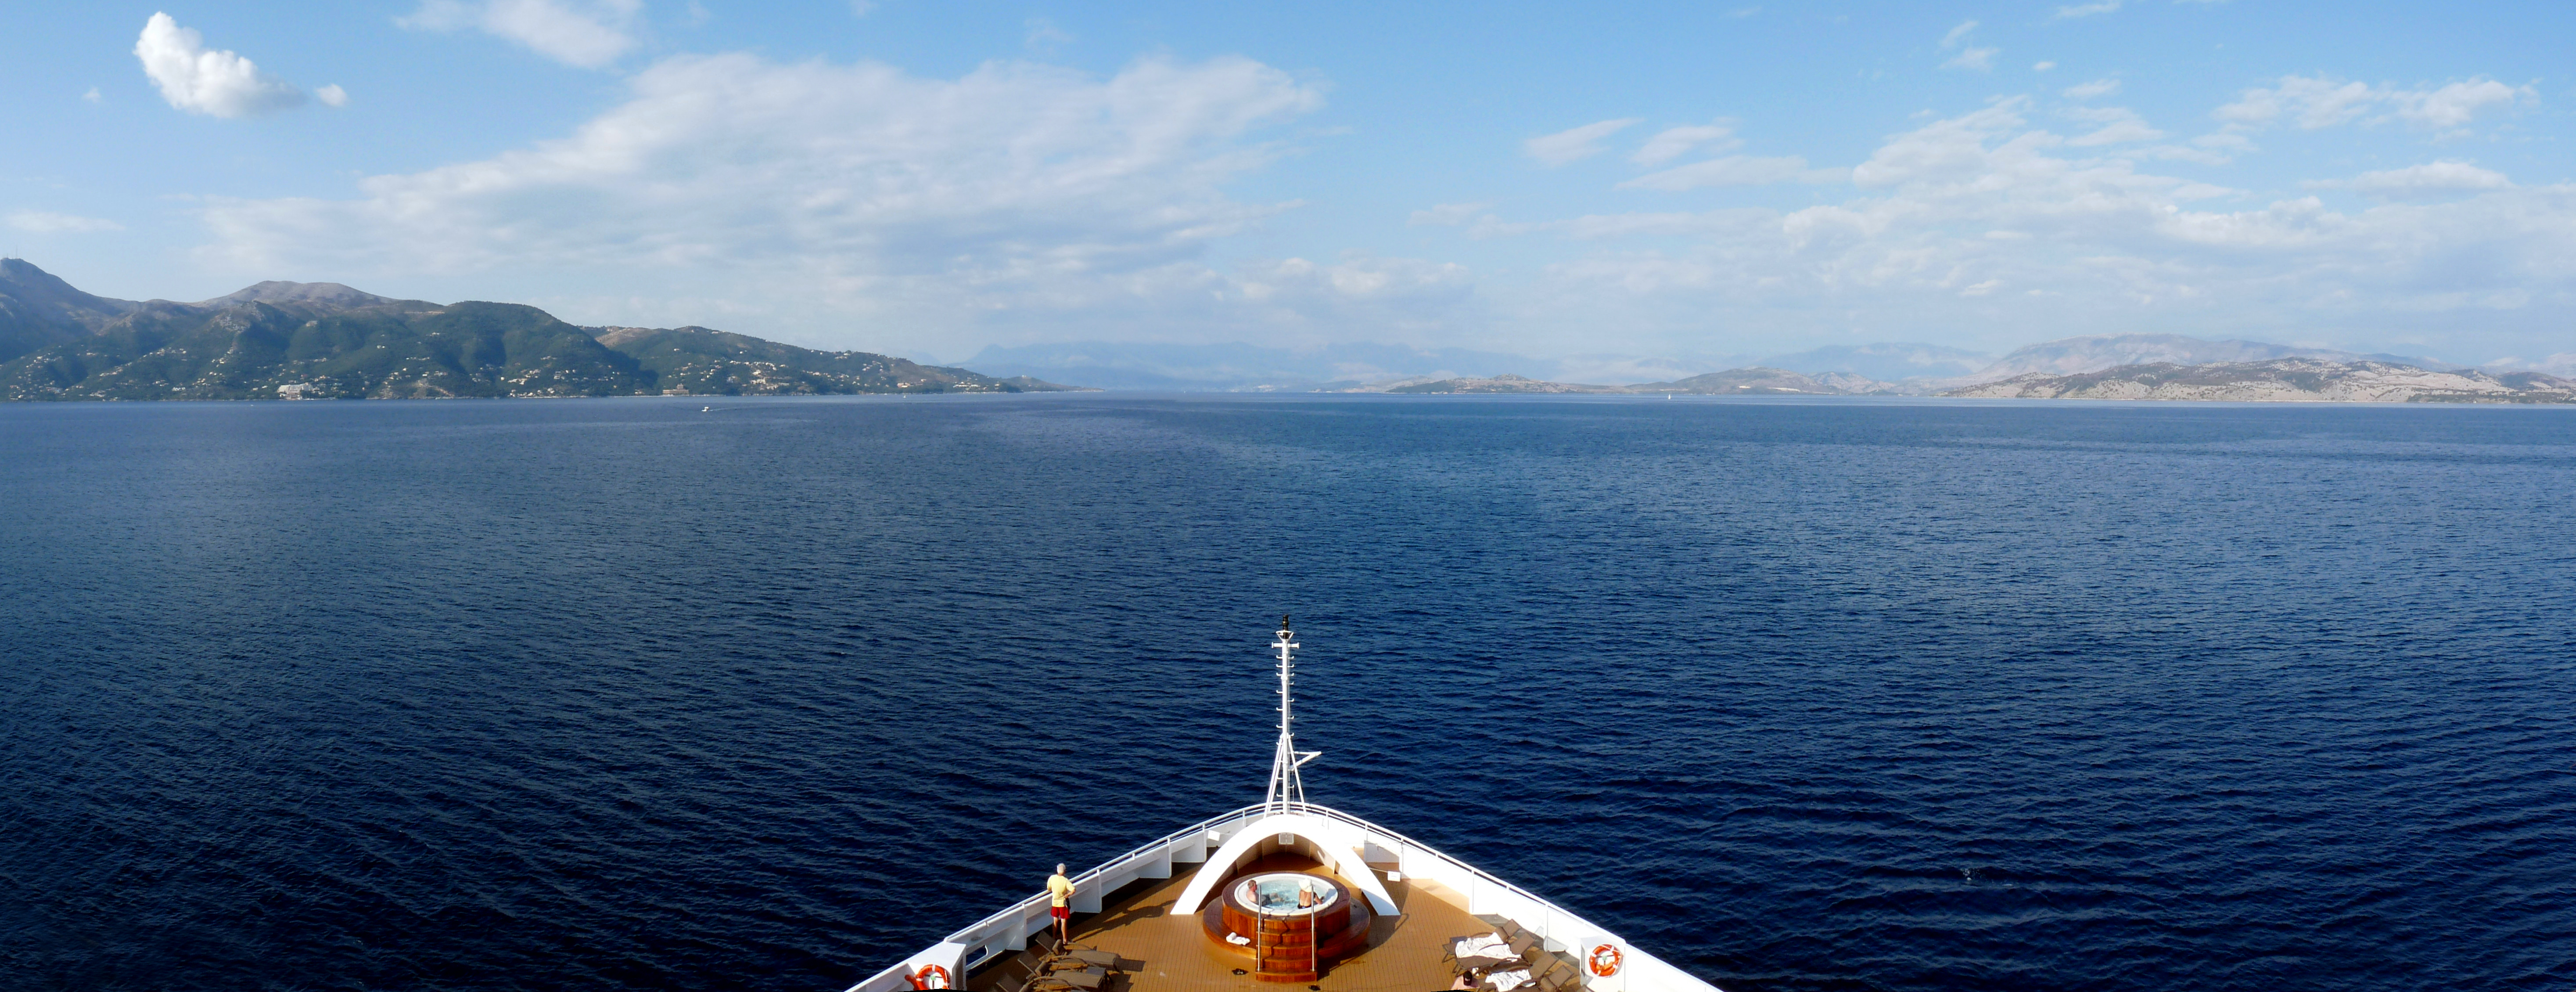 Take a cruise on the Adriatic